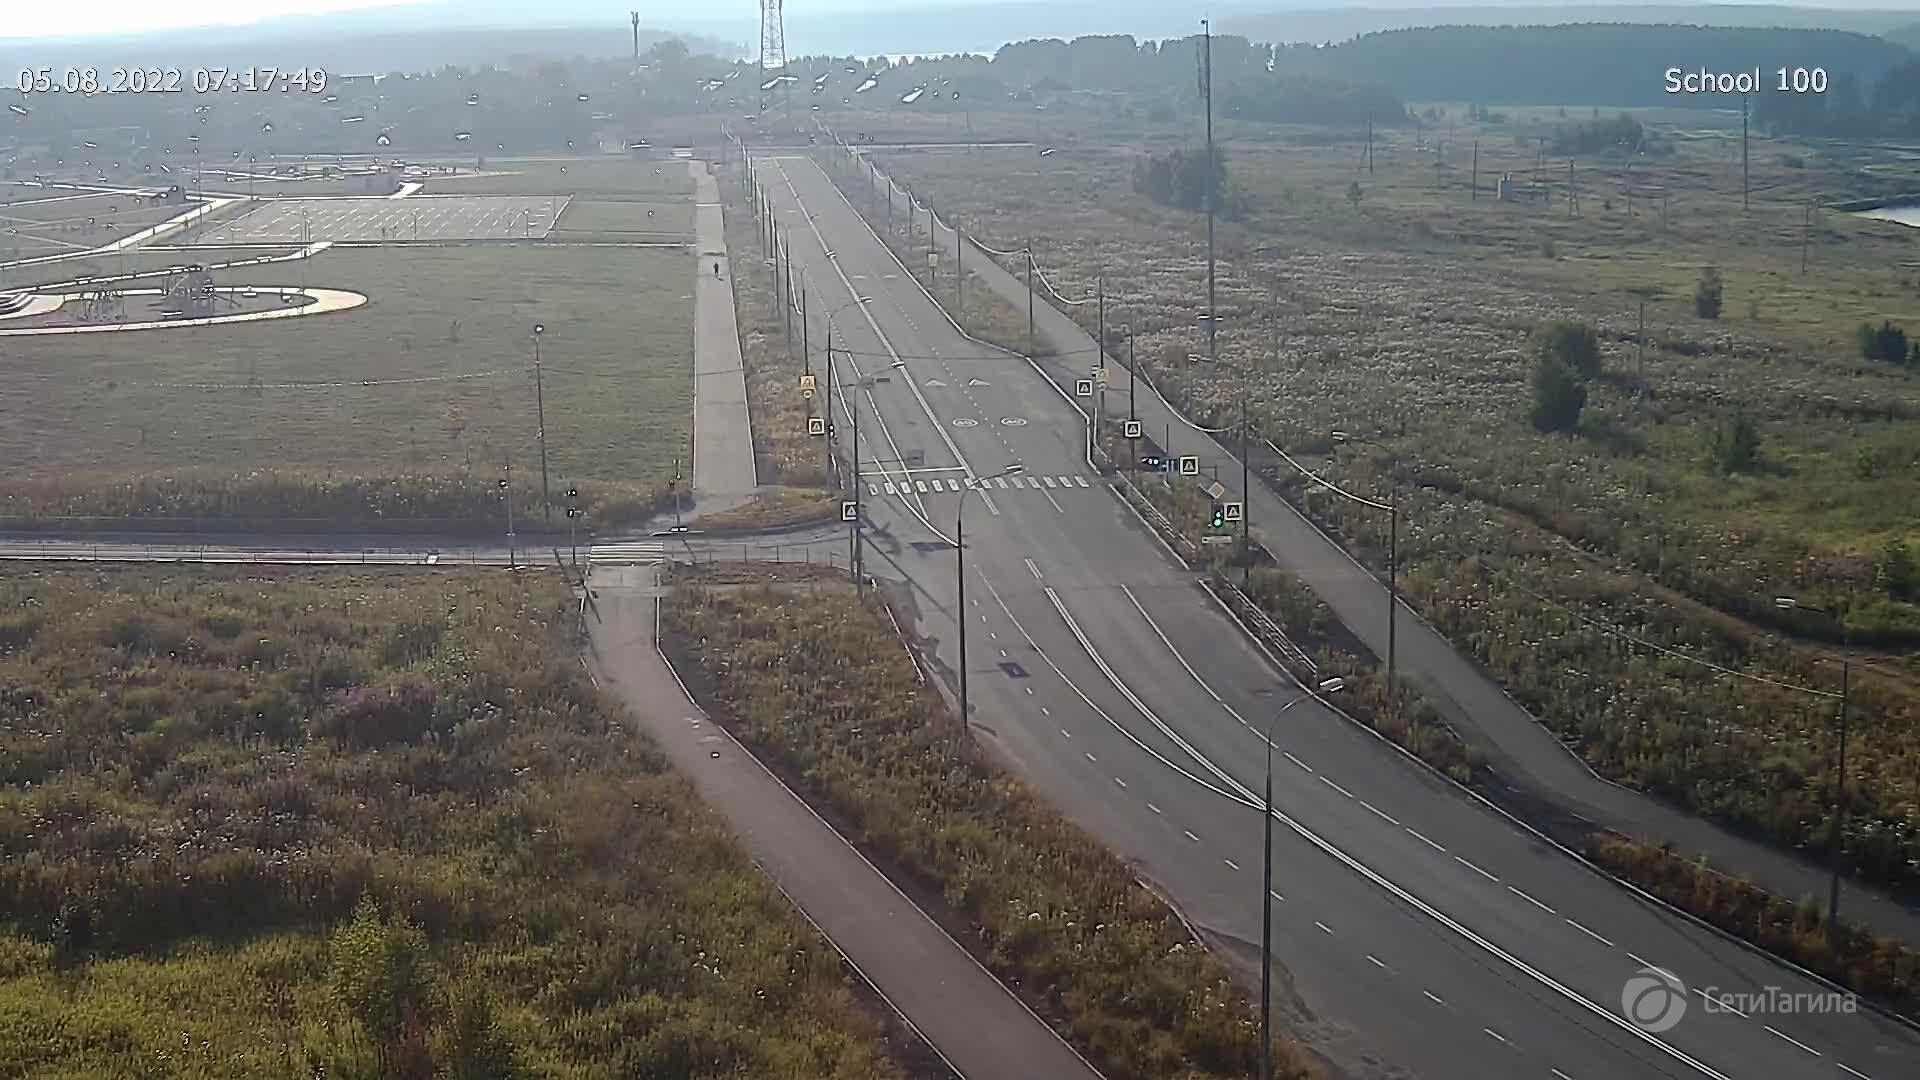 Webcam pedestrian crossing at school N 100, Nizhny Tagil, Sverdlovsk Region, Russia